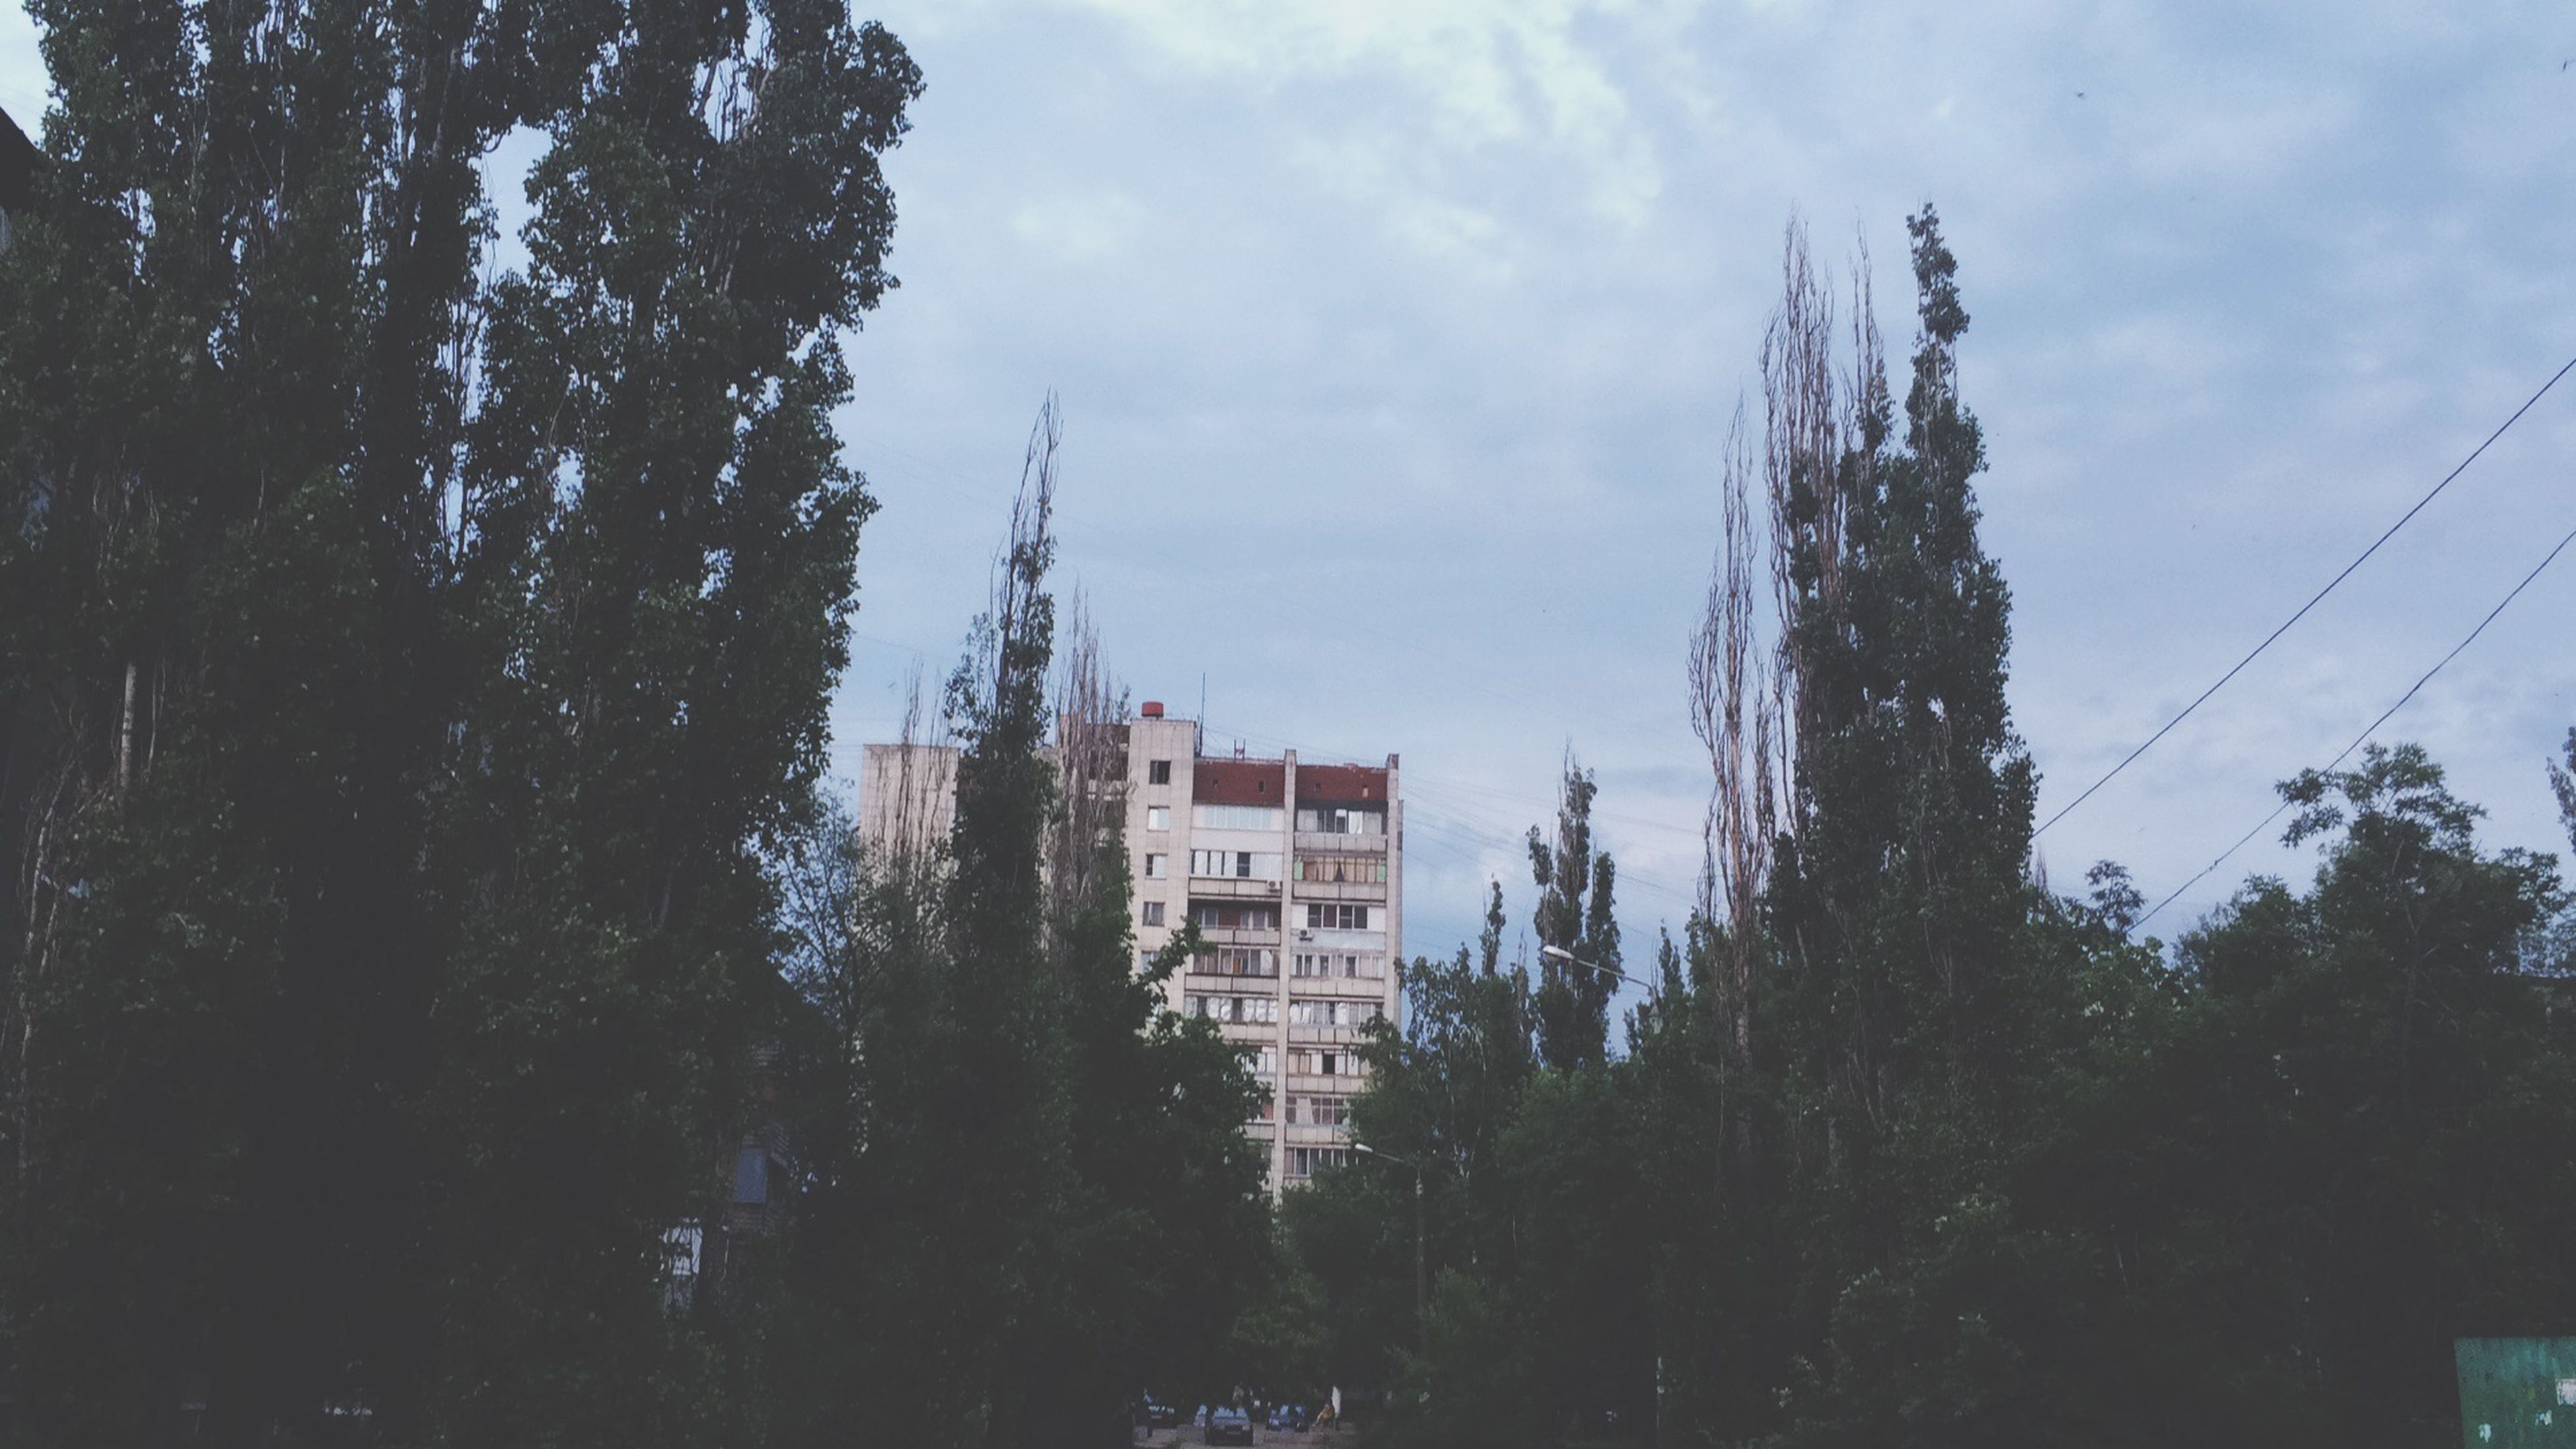 architecture, building exterior, built structure, low angle view, tree, sky, cloud - sky, building, cloud, cloudy, residential structure, residential building, city, outdoors, day, no people, house, tall - high, growth, tower